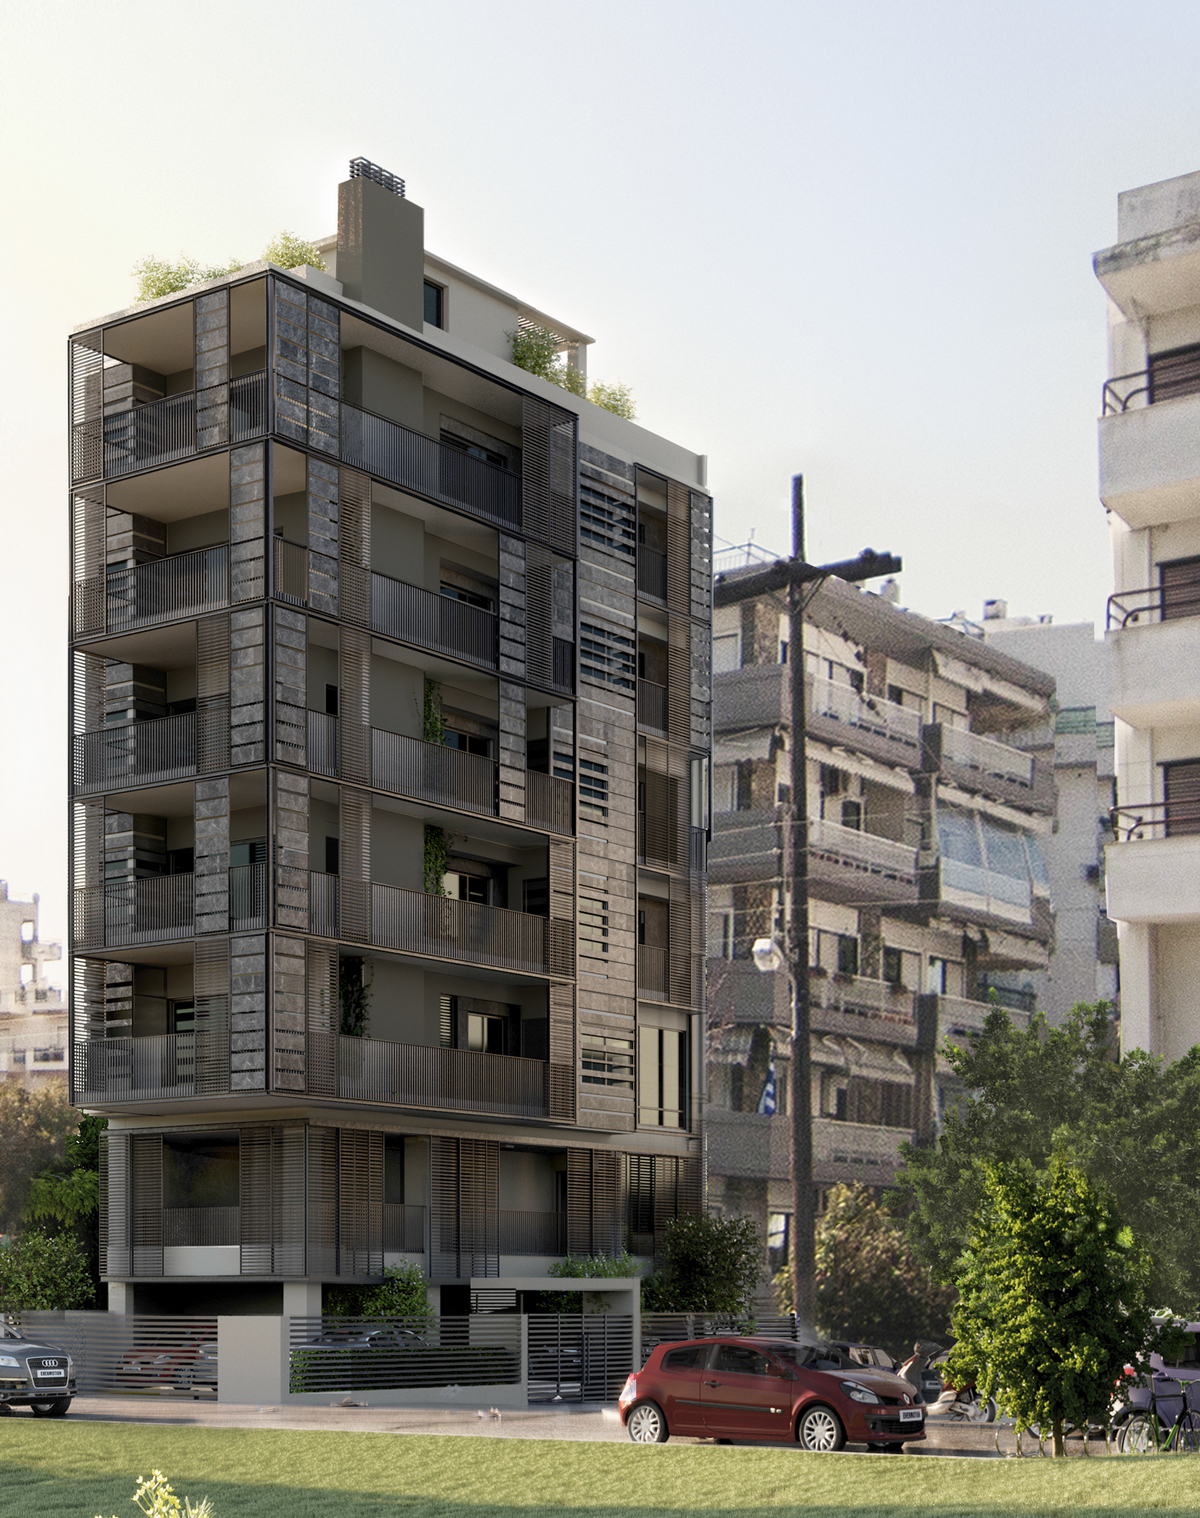 Poli 10, Central Macedonia, Greece - apartments in Thessaloniki for sale